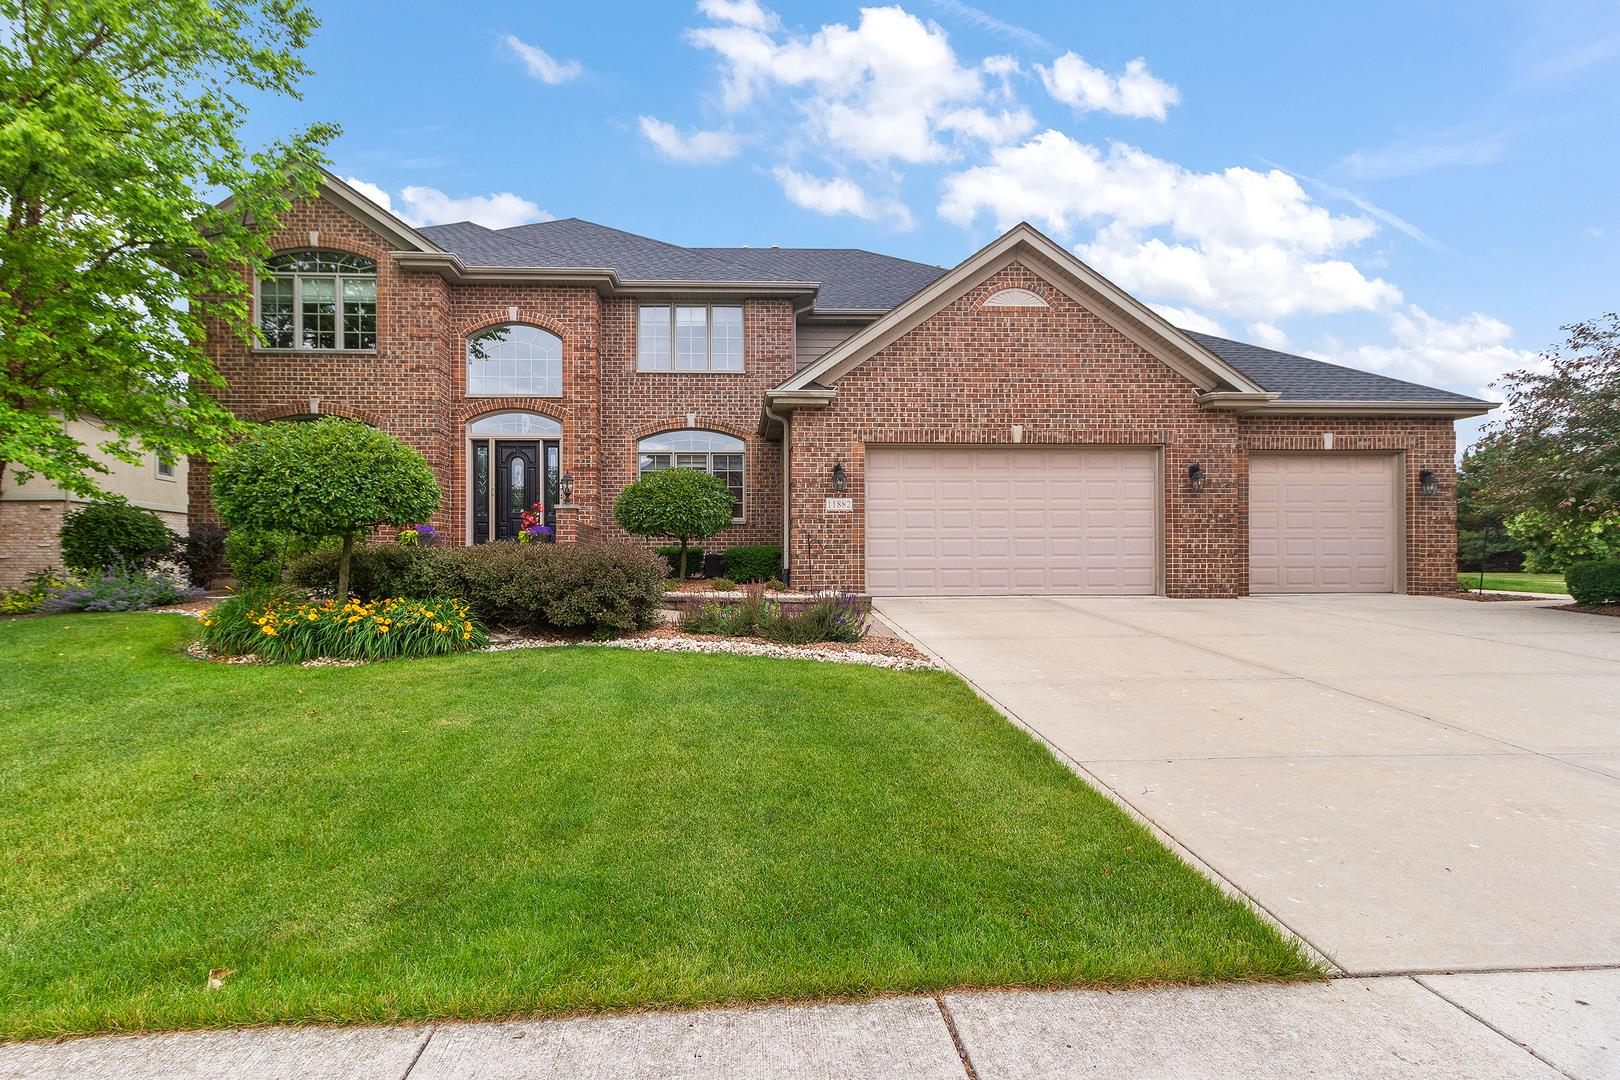 11882 Coquille Drive, Frankfort, IL 60423 - #: 11128636